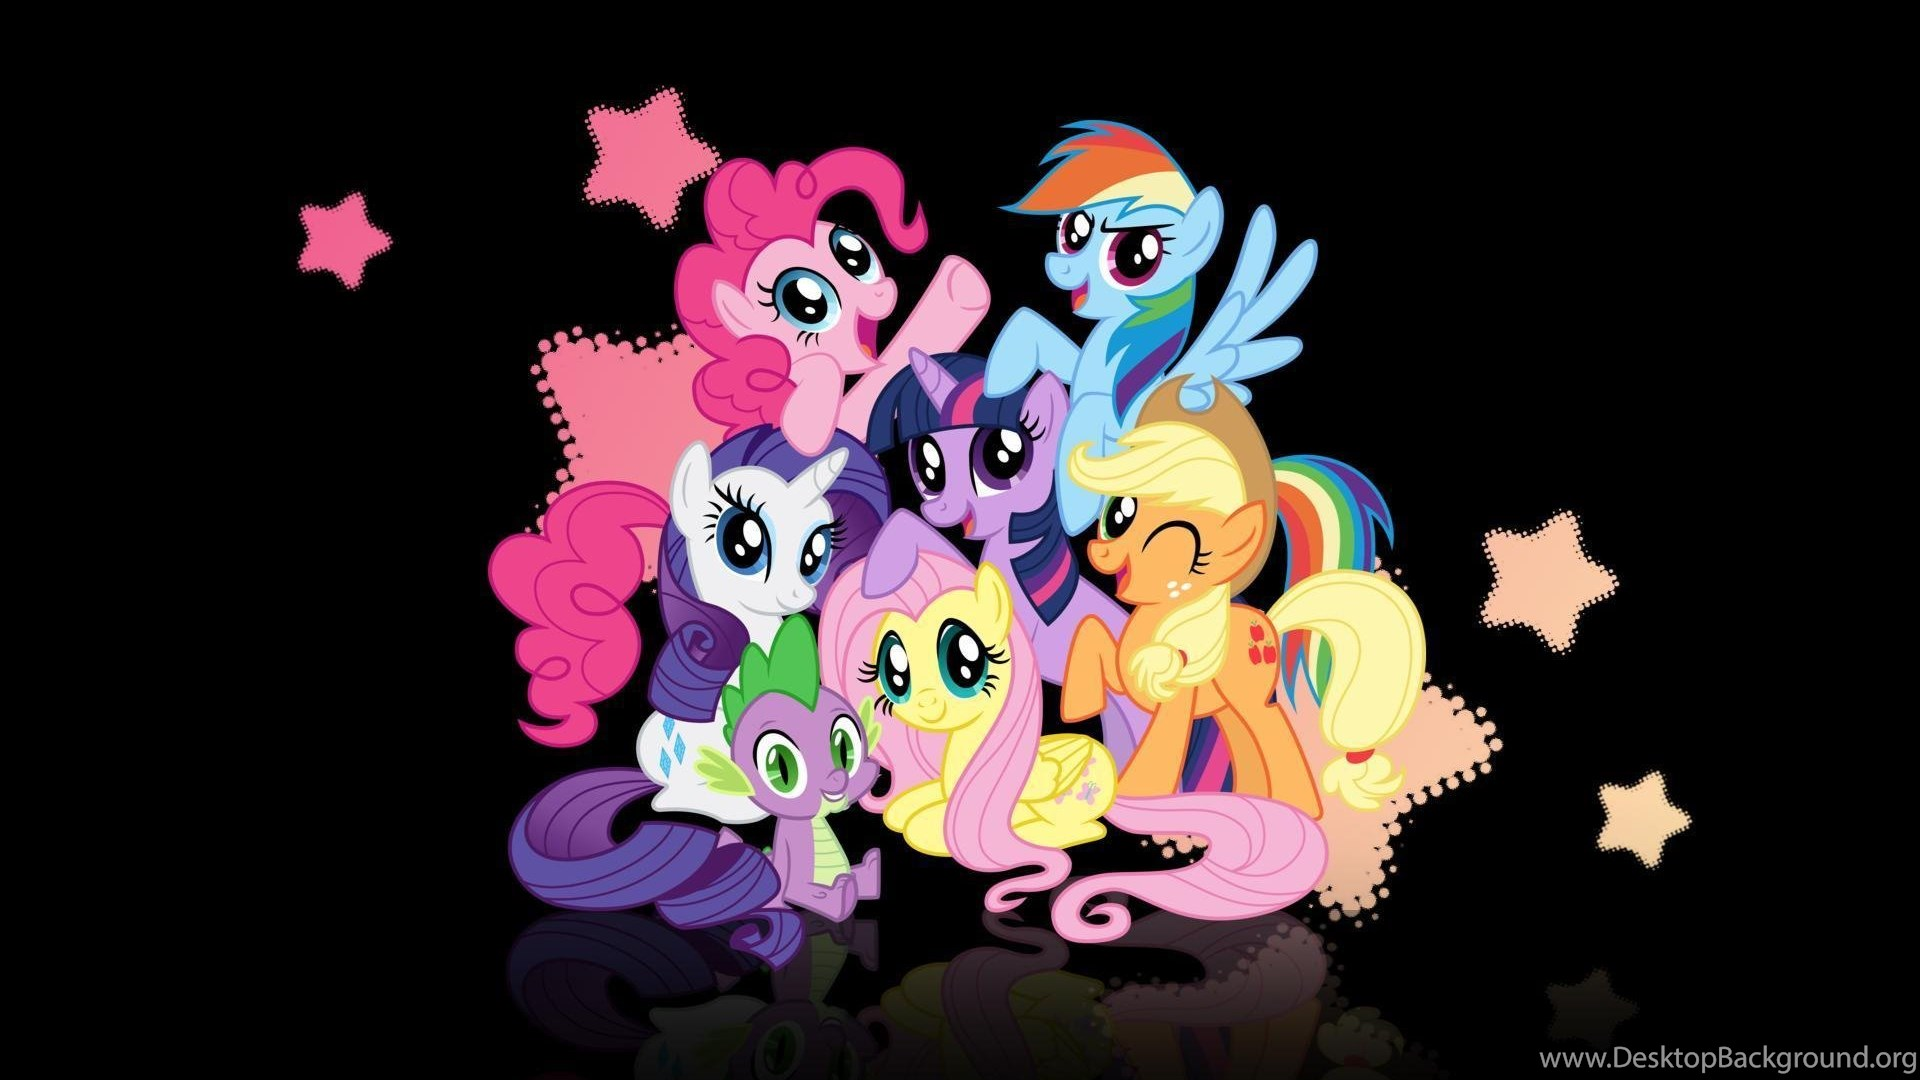 Lovely My Little Pony Wallpapers Hd Wallpapers Desktop Background